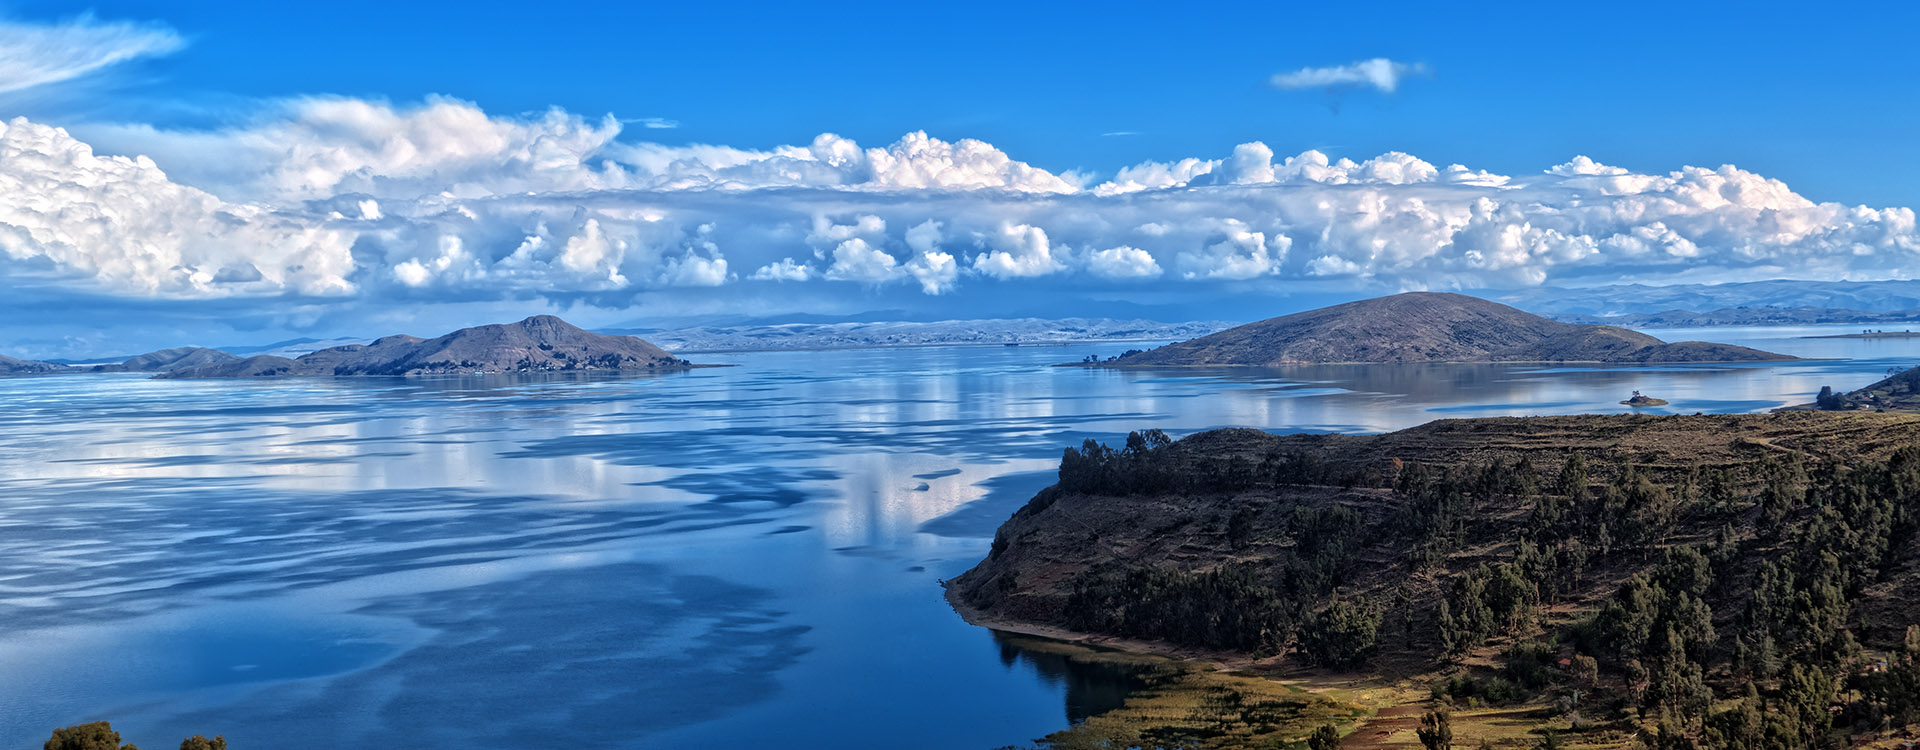 Titicaca lake view from Bolivia